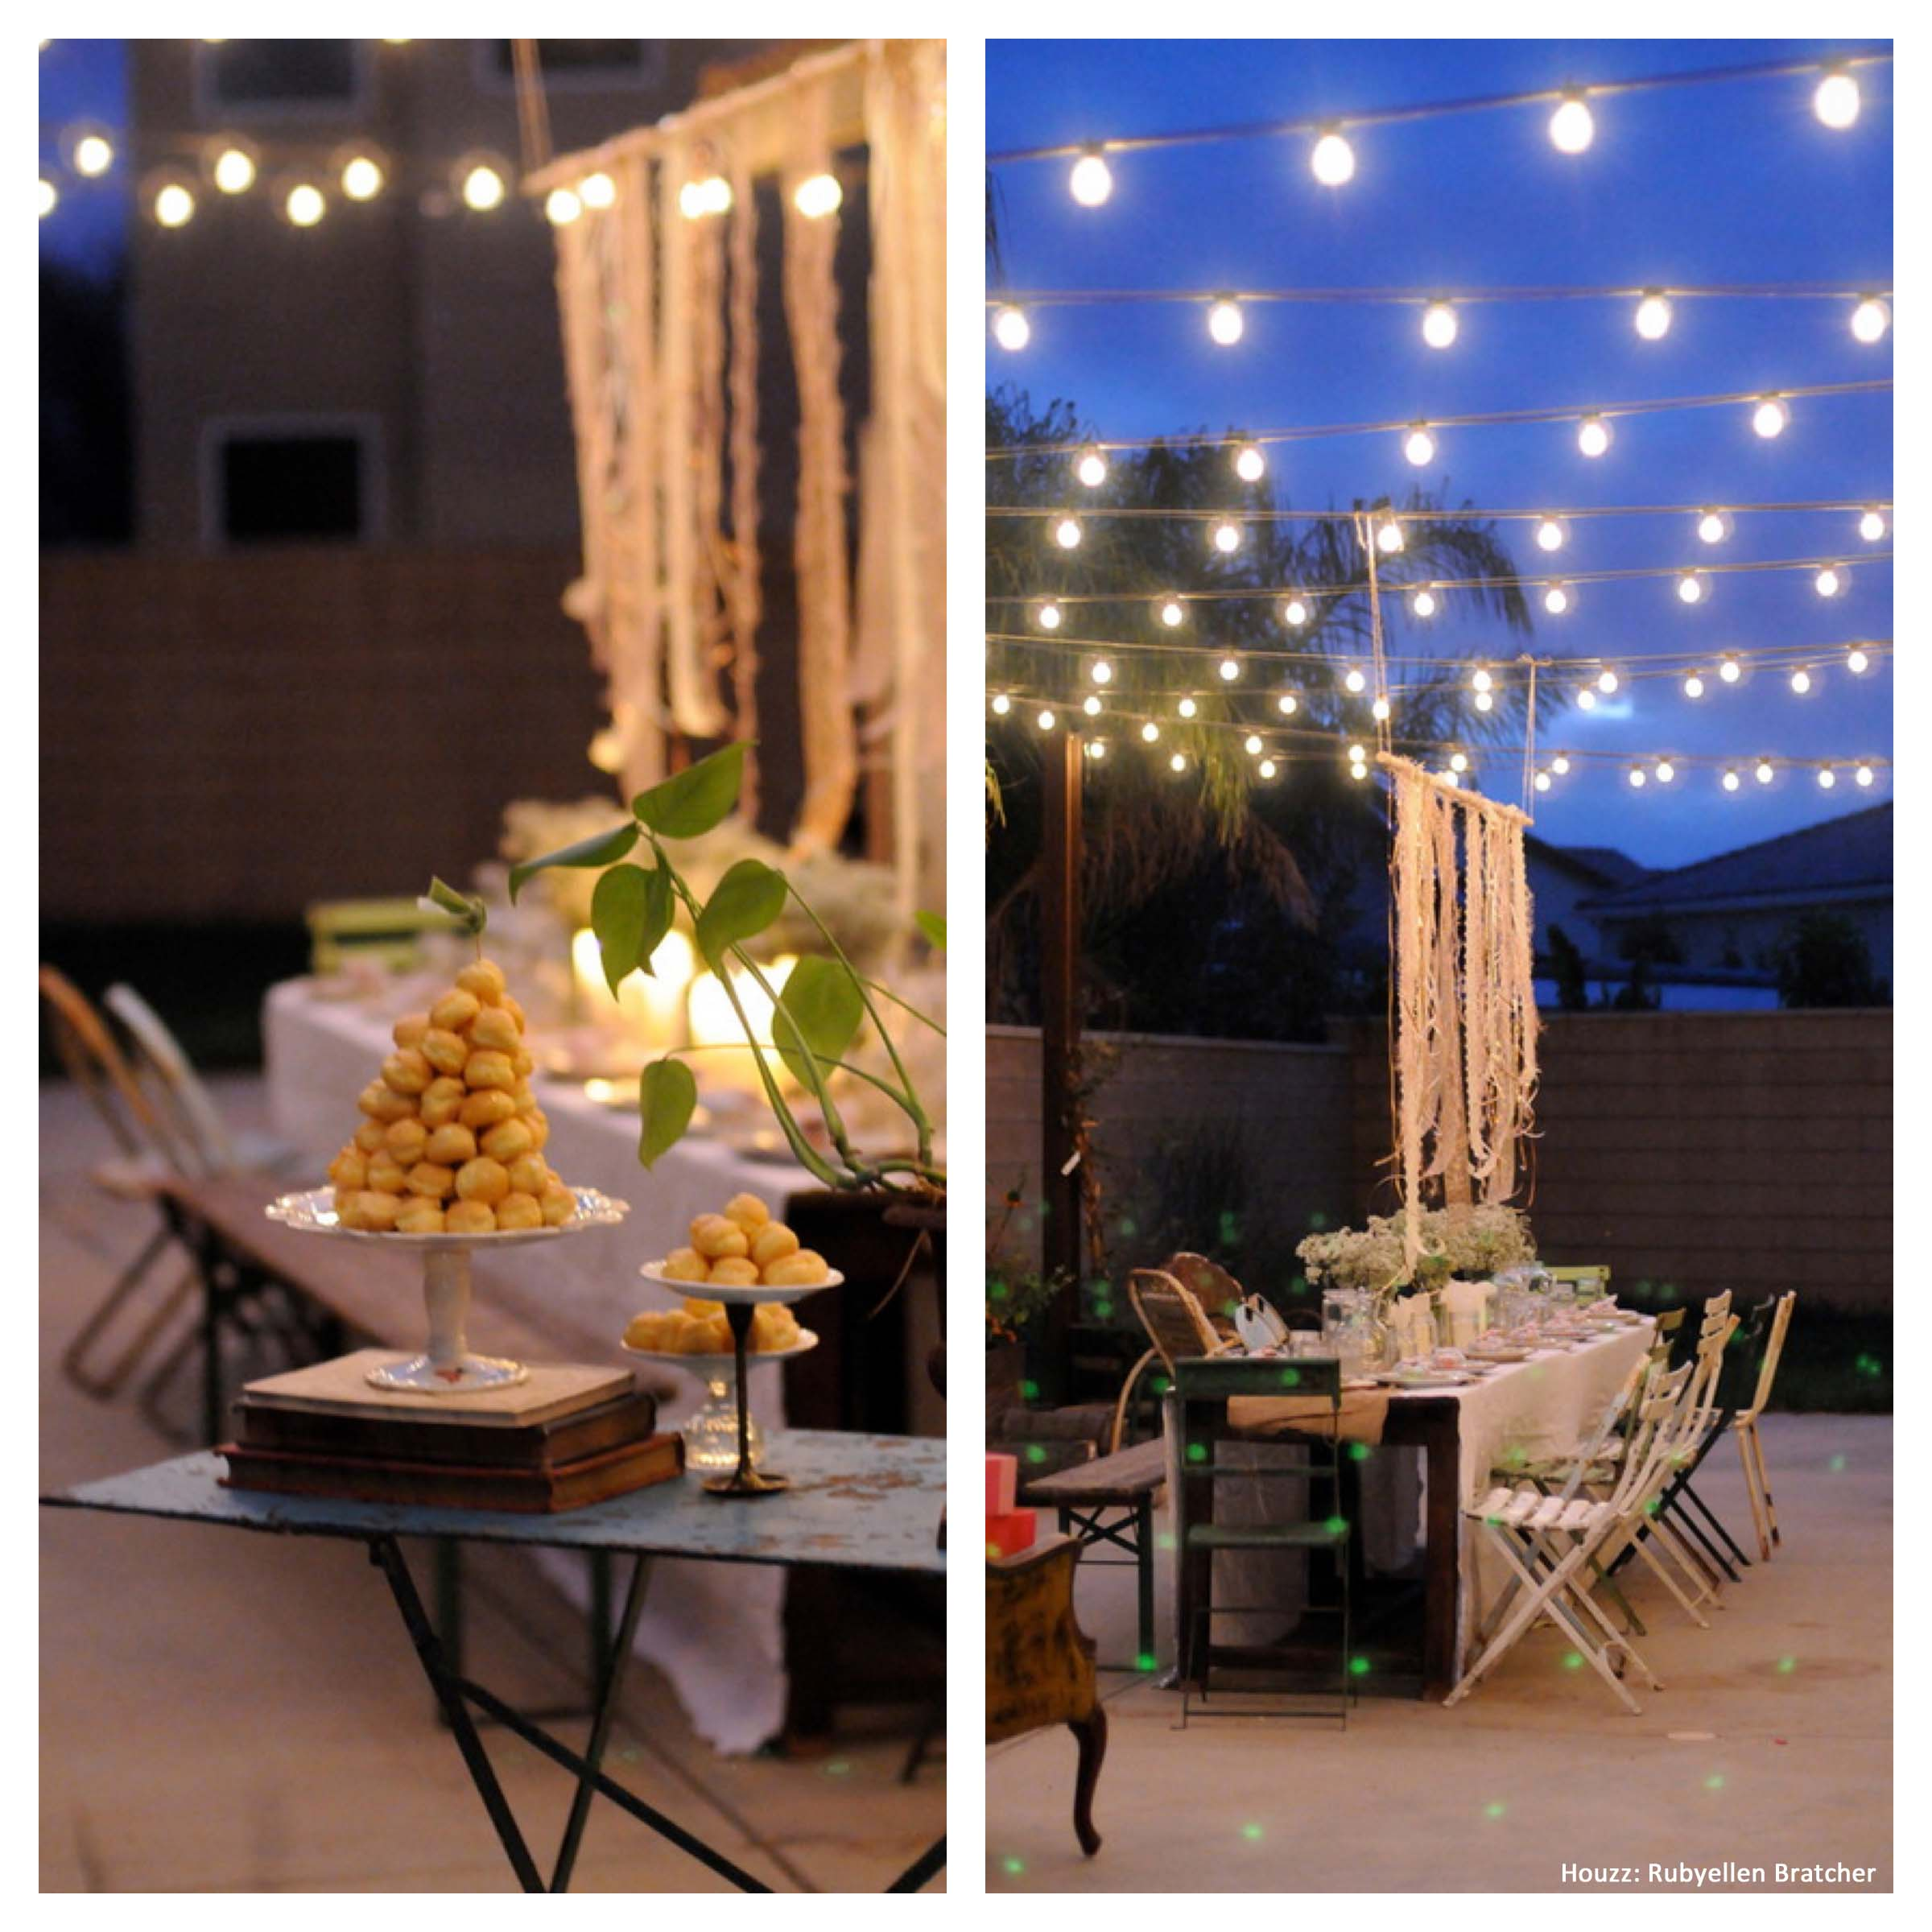 91 Backyard Graduation Party Decoration Ideas